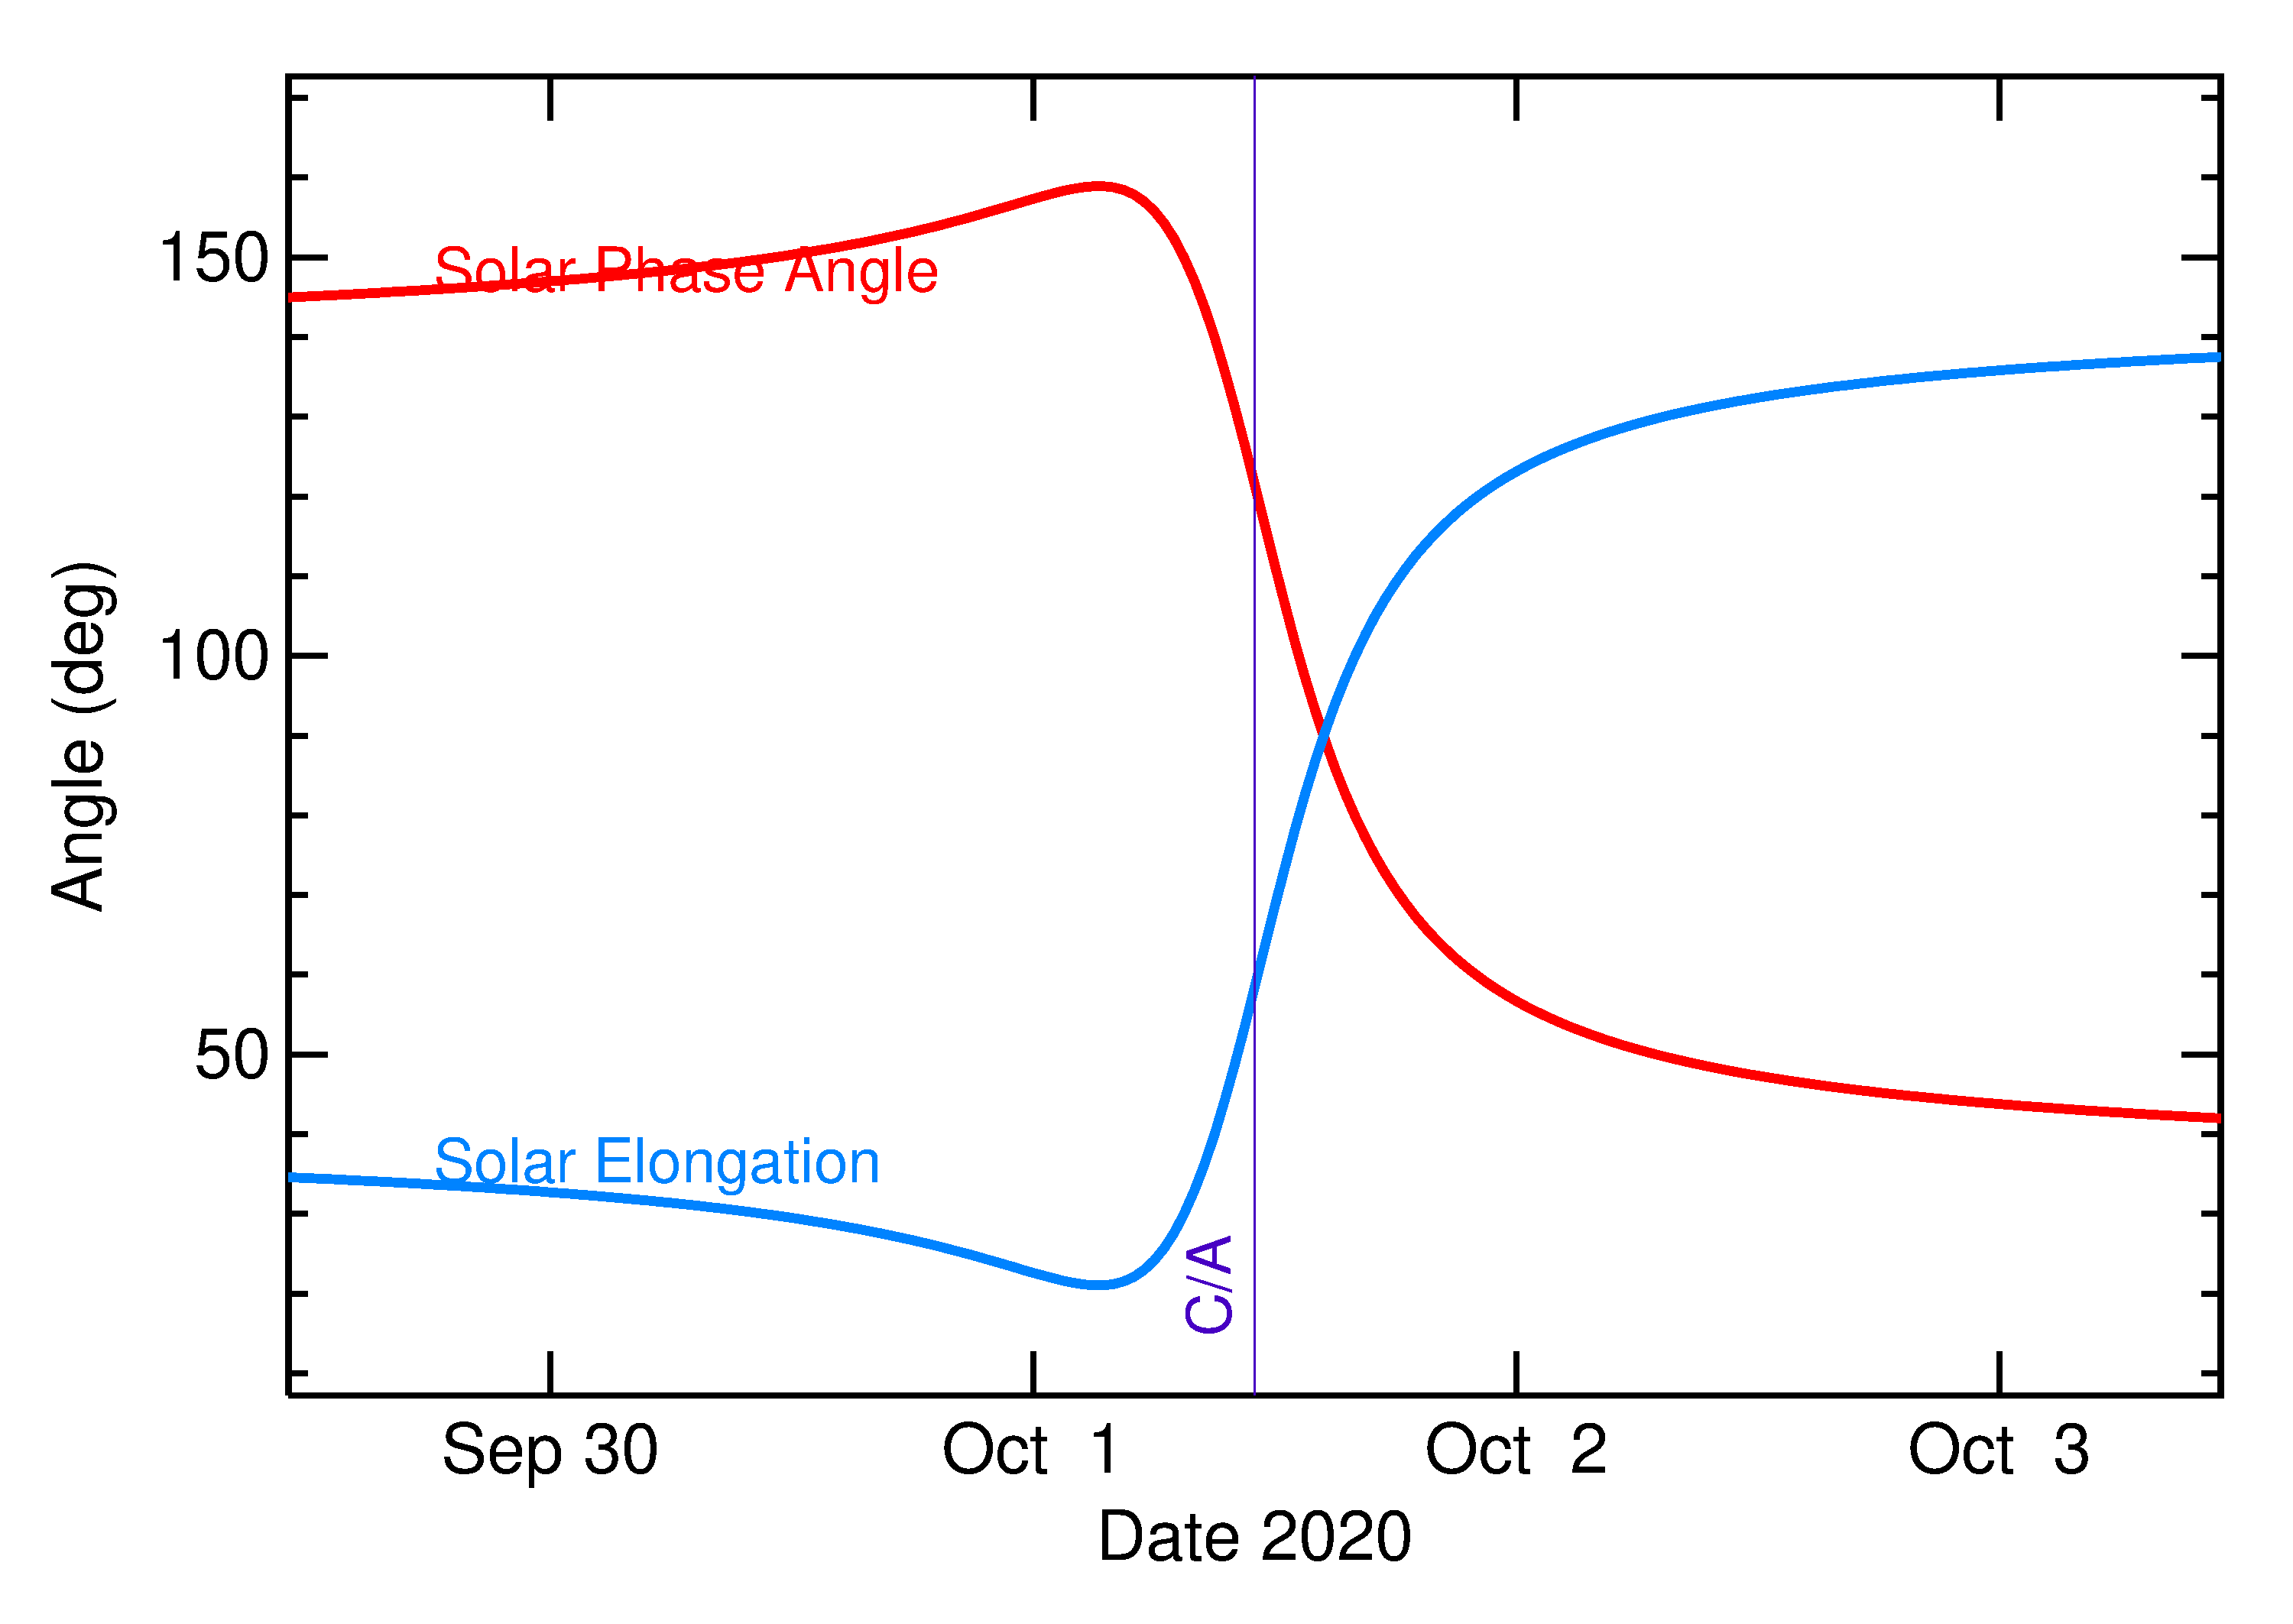 Solar Elongation and Solar Phase Angle of 2020 TA in the days around closest approach